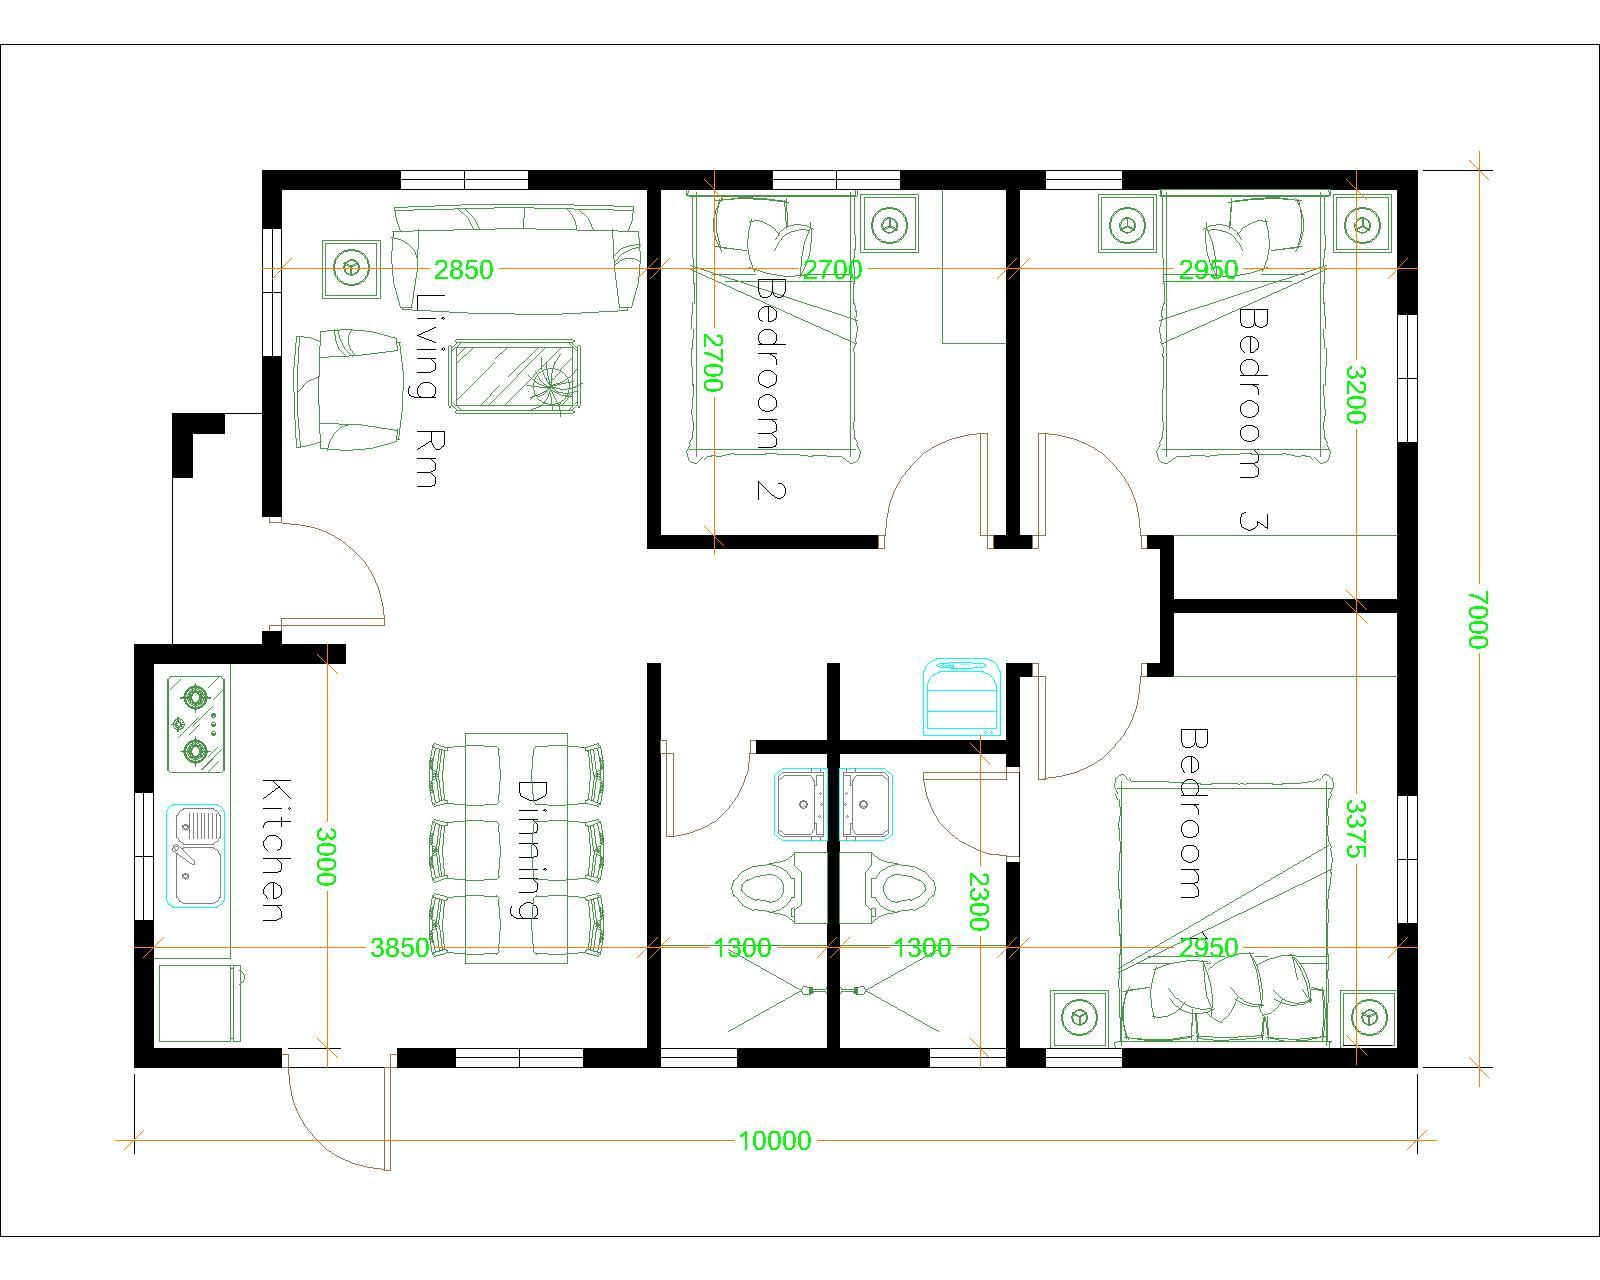 House Plans 7x10 With 3 Bedrooms House Plans Free Downloads My House Plans Simple House Design House Plan Gallery